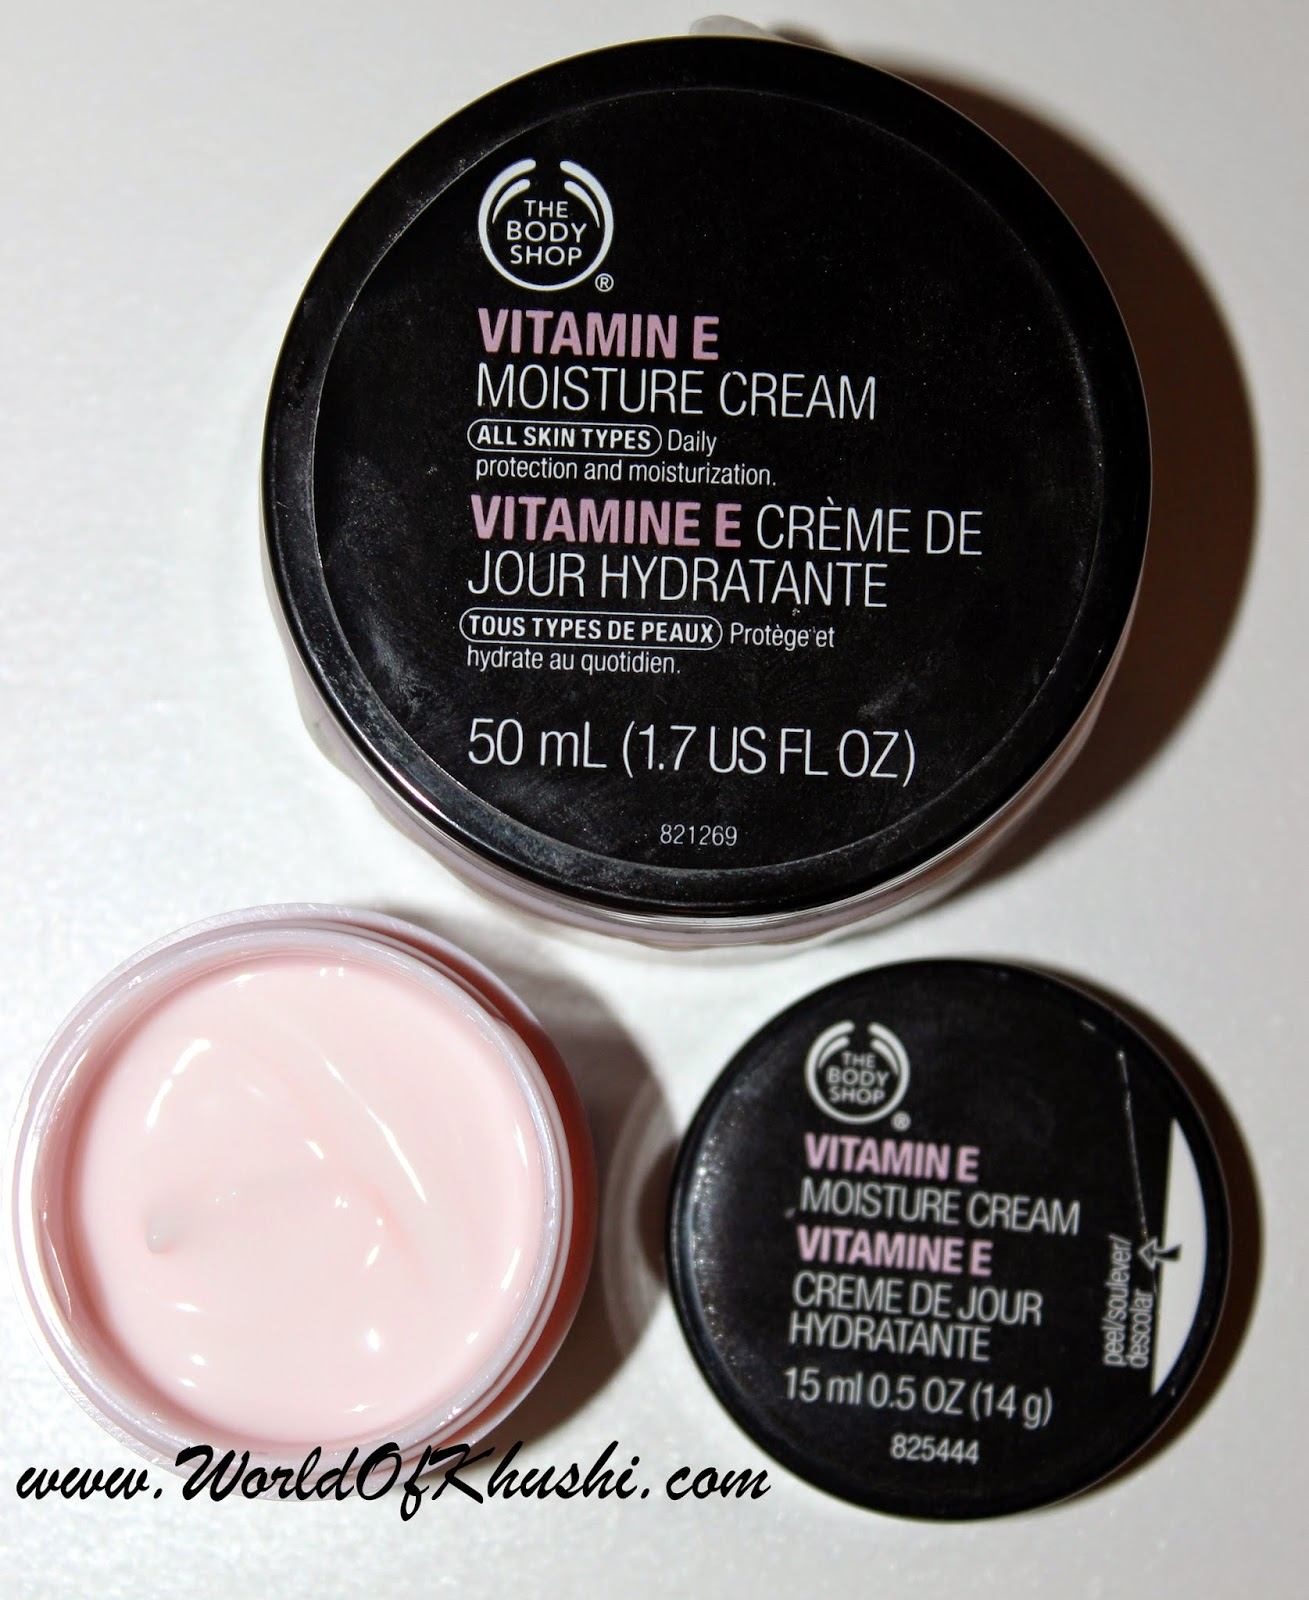 thebodyshop-vitamine-review-khushiworld